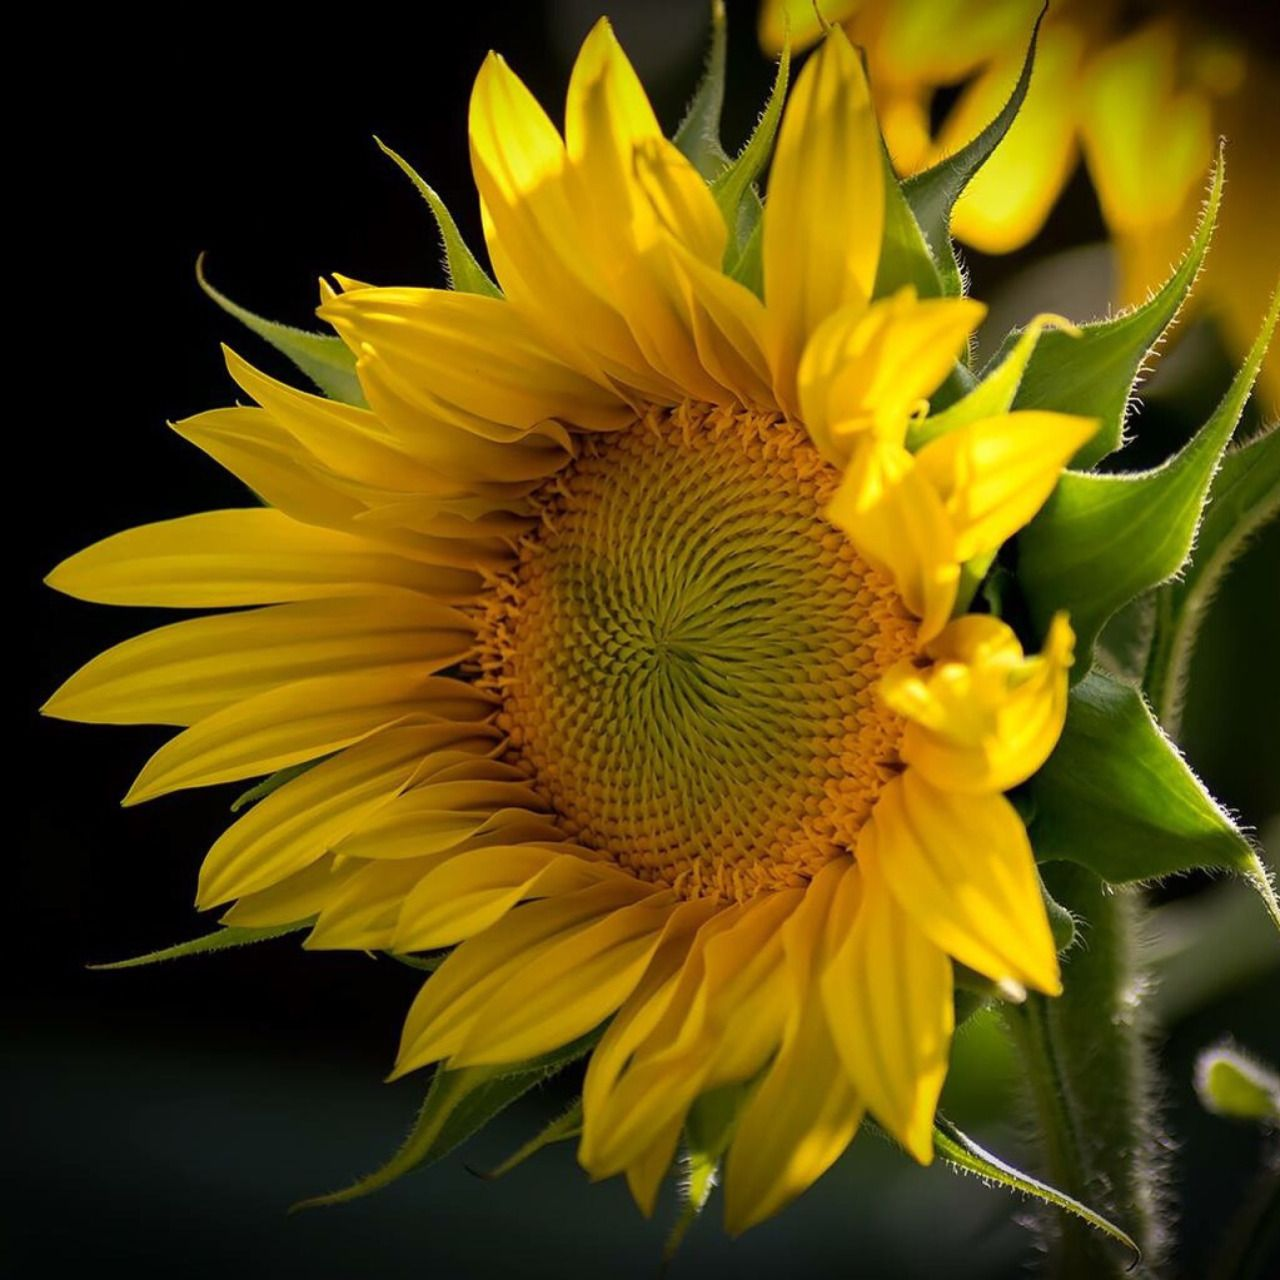 All things bright and beautiful.... Sunflower images